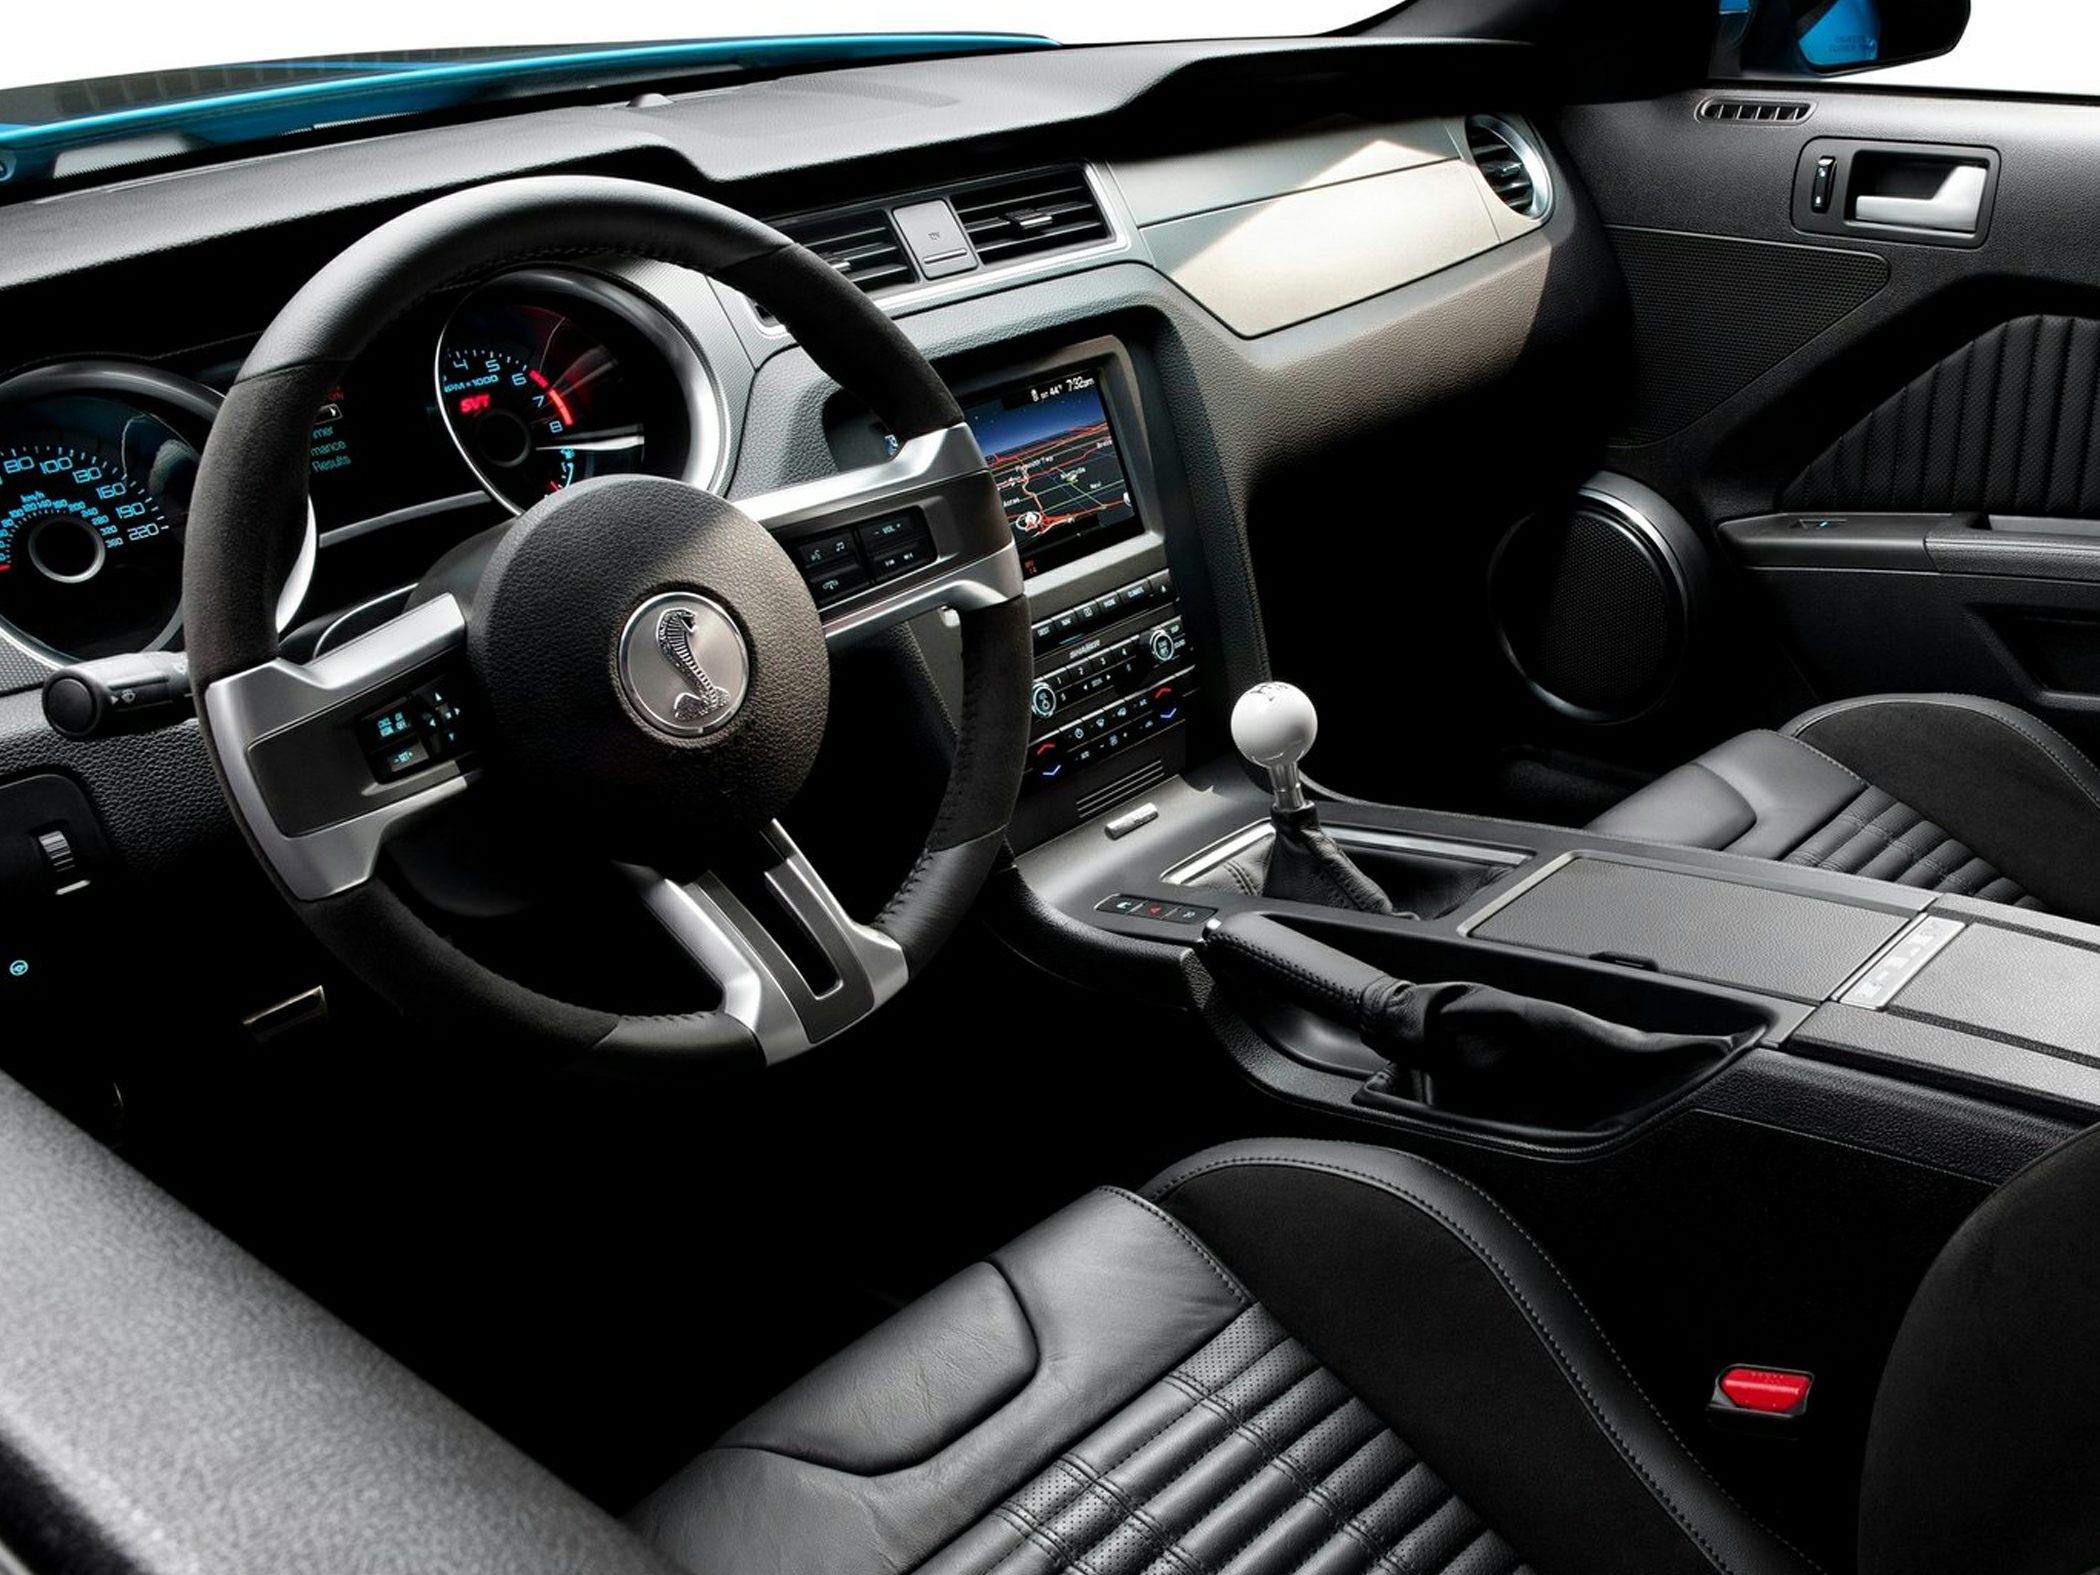 2014 Ford Shelby GT500 Interior